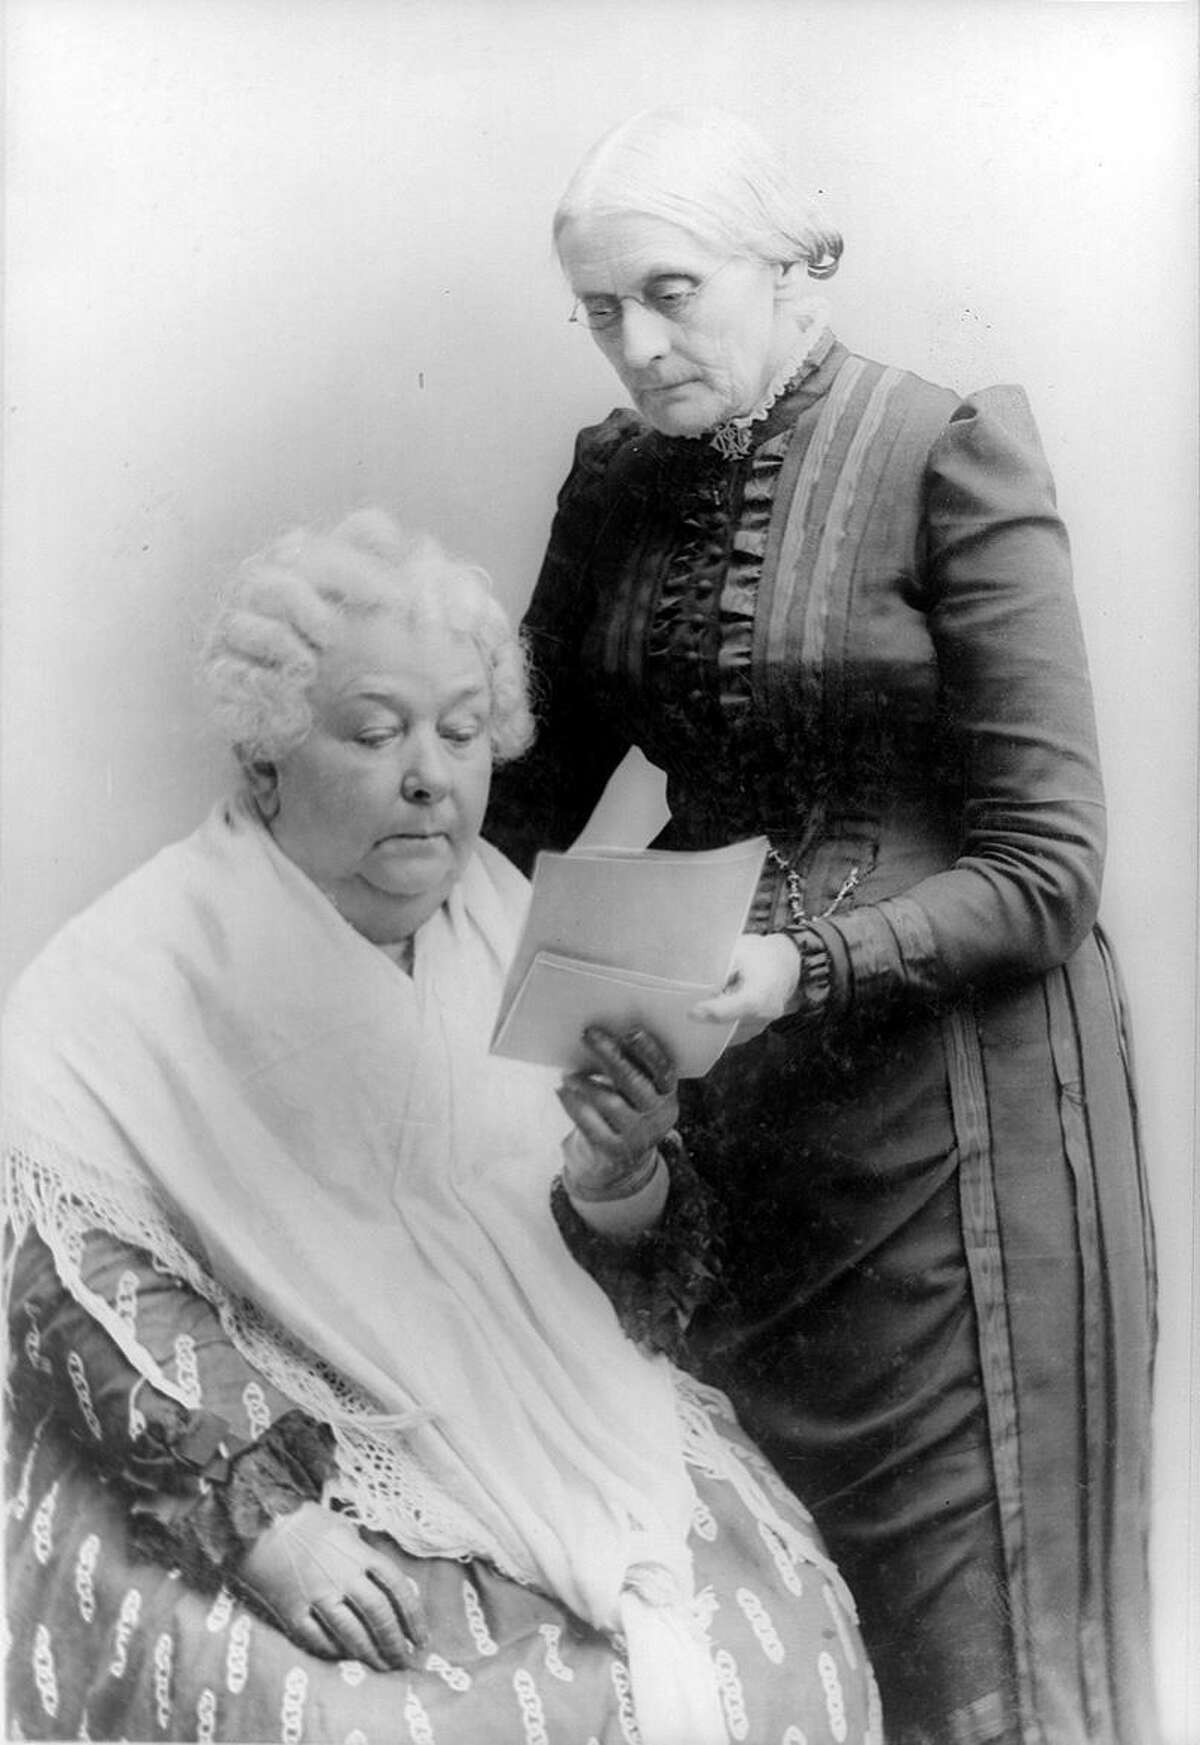 Elizabeth Cady Stanton, seated, and Susan B. Anthony, standing, both attended the first Women's Rights convention held in Seneca Falls, New York, in July of 1848. Seen here, photographed together, sometime between 1880 and 1902.